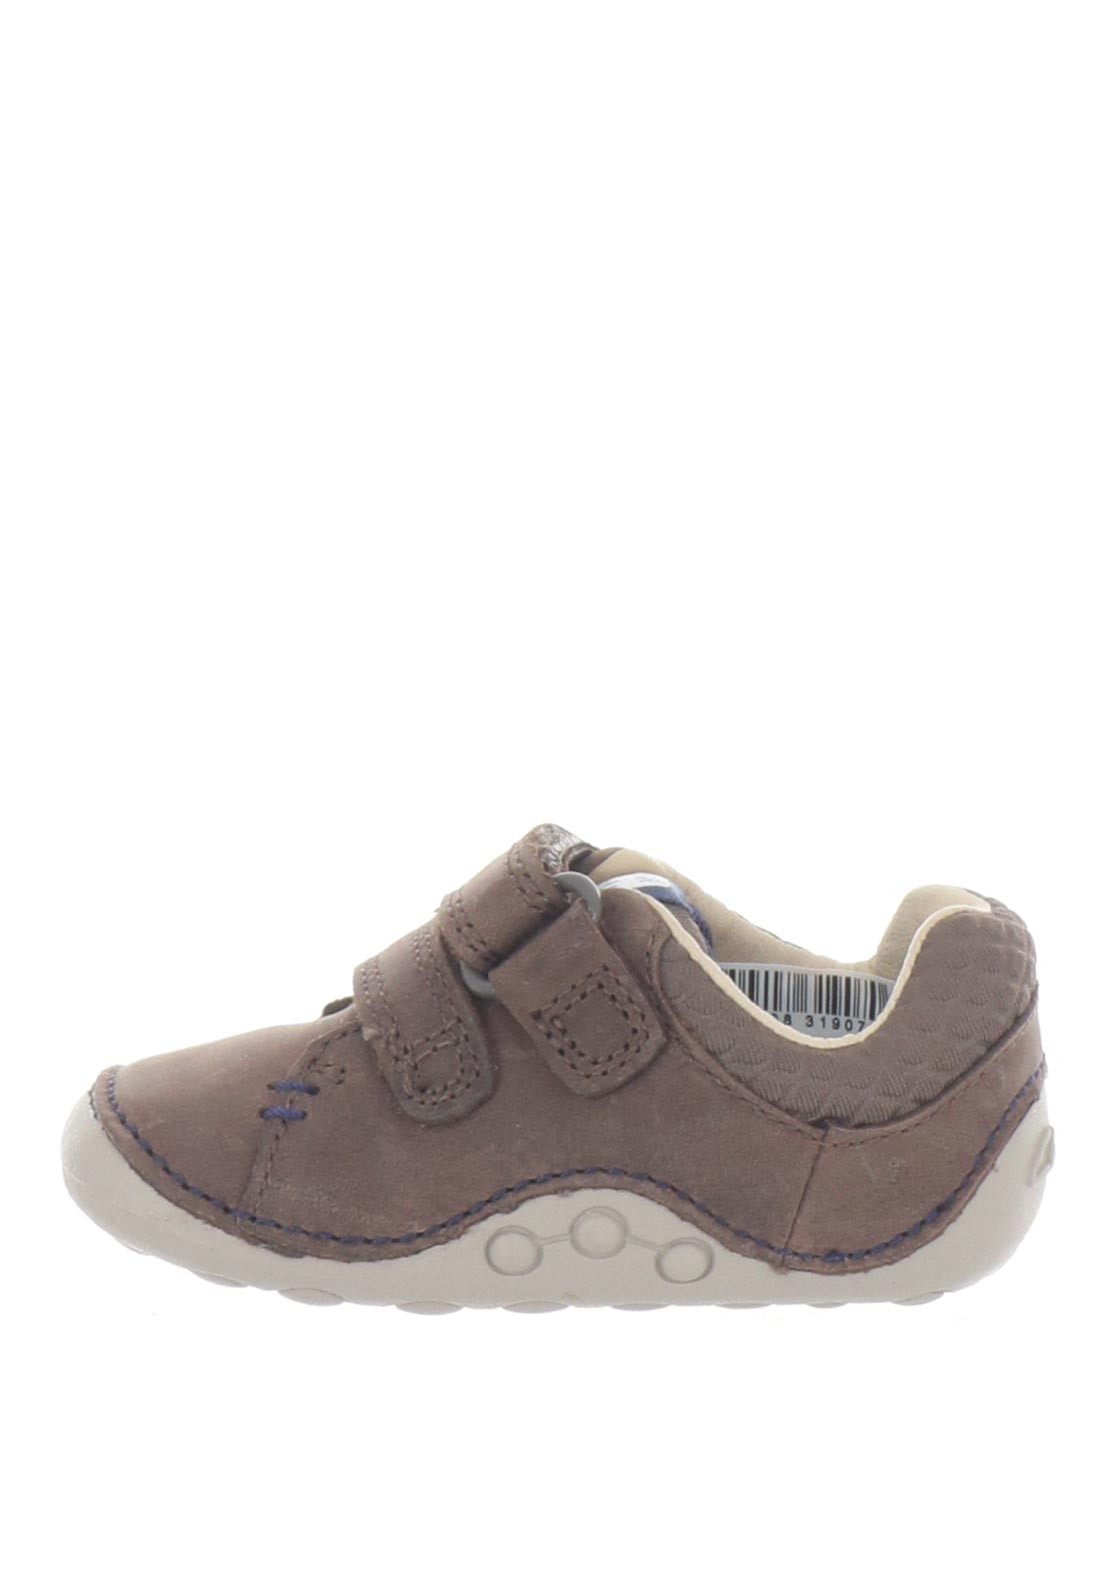 Baby First Walking Shoes Ireland